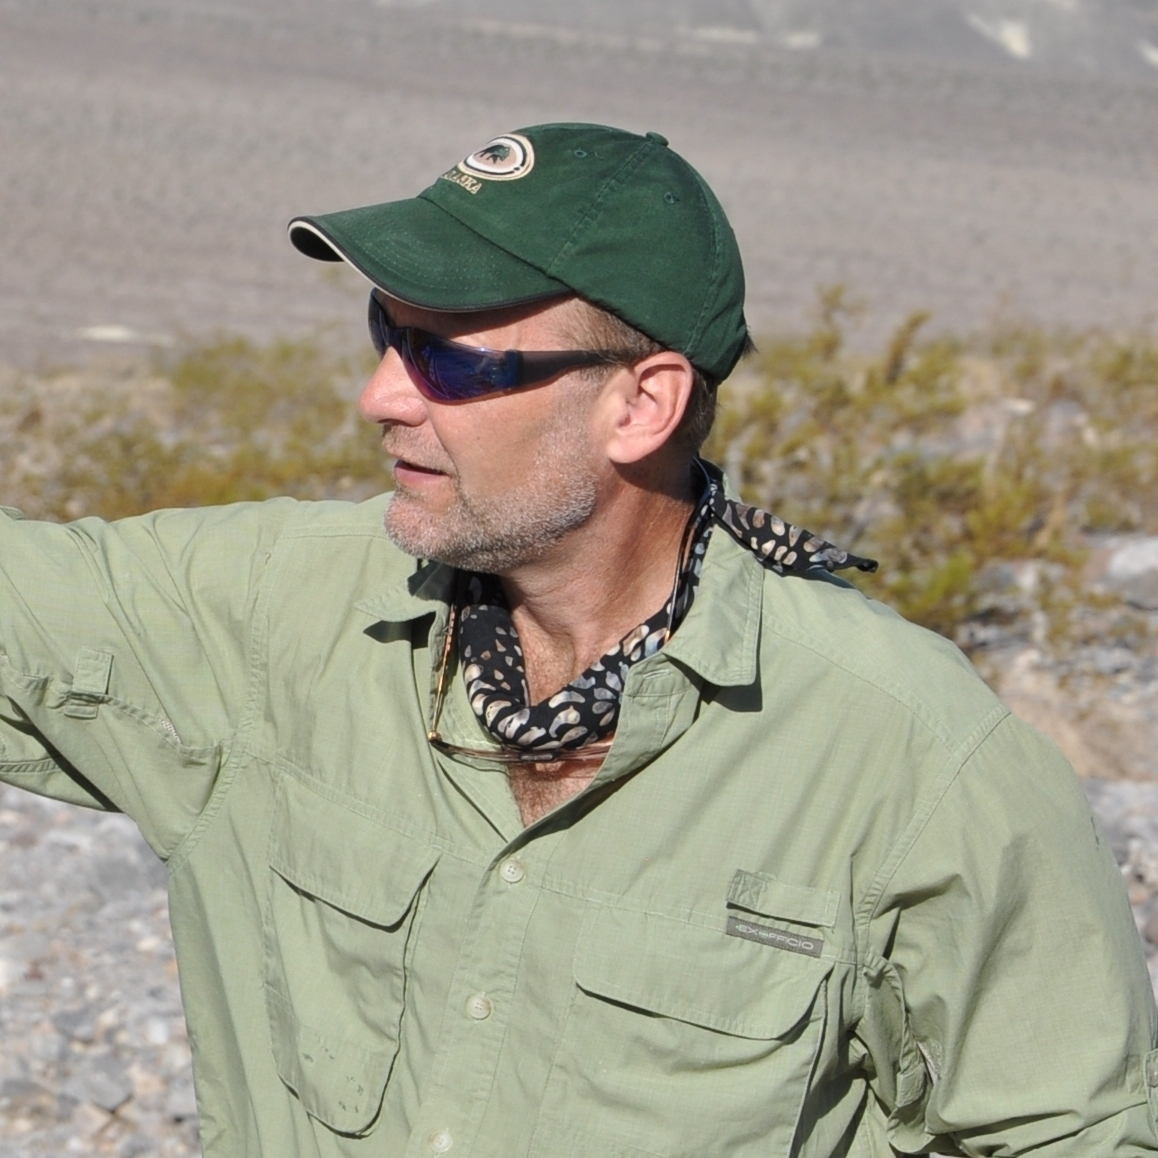 Bill Streever is a biologist focusing on habitat restoration and ecosystem monitoring. He lives in Alaska.